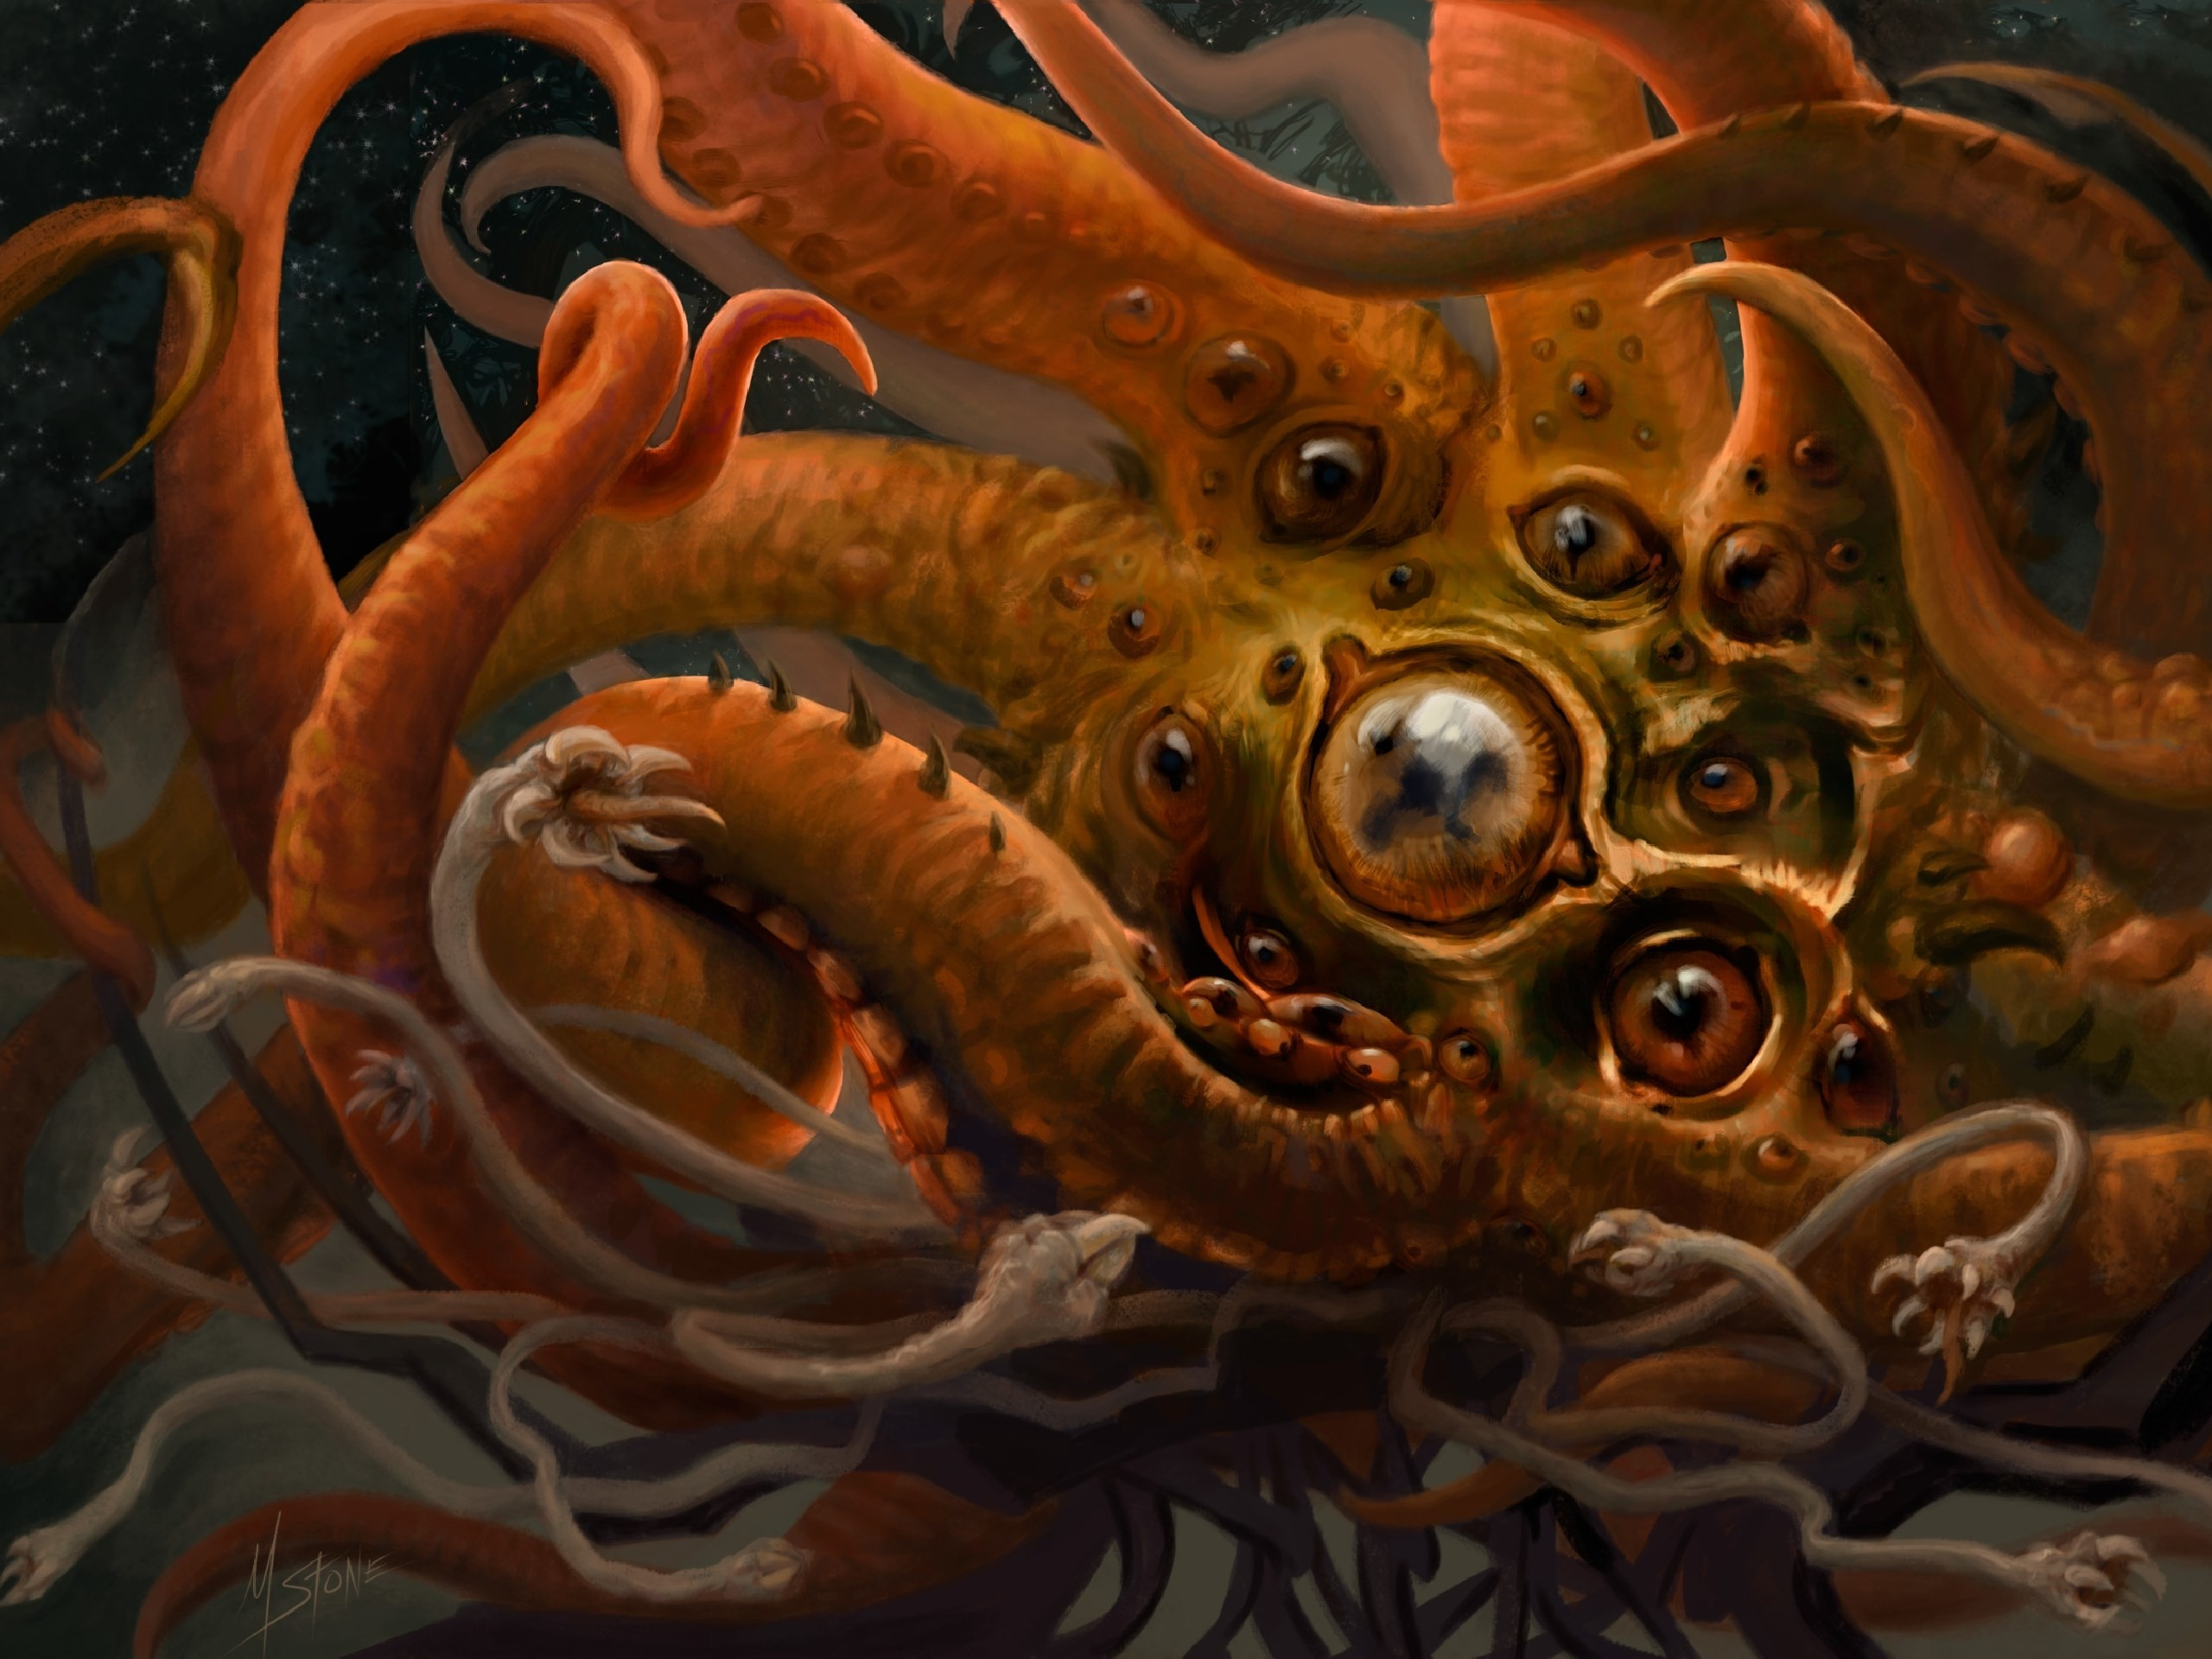 Explore Cthulhu Art, Lovecraft Cthulhu, and more!